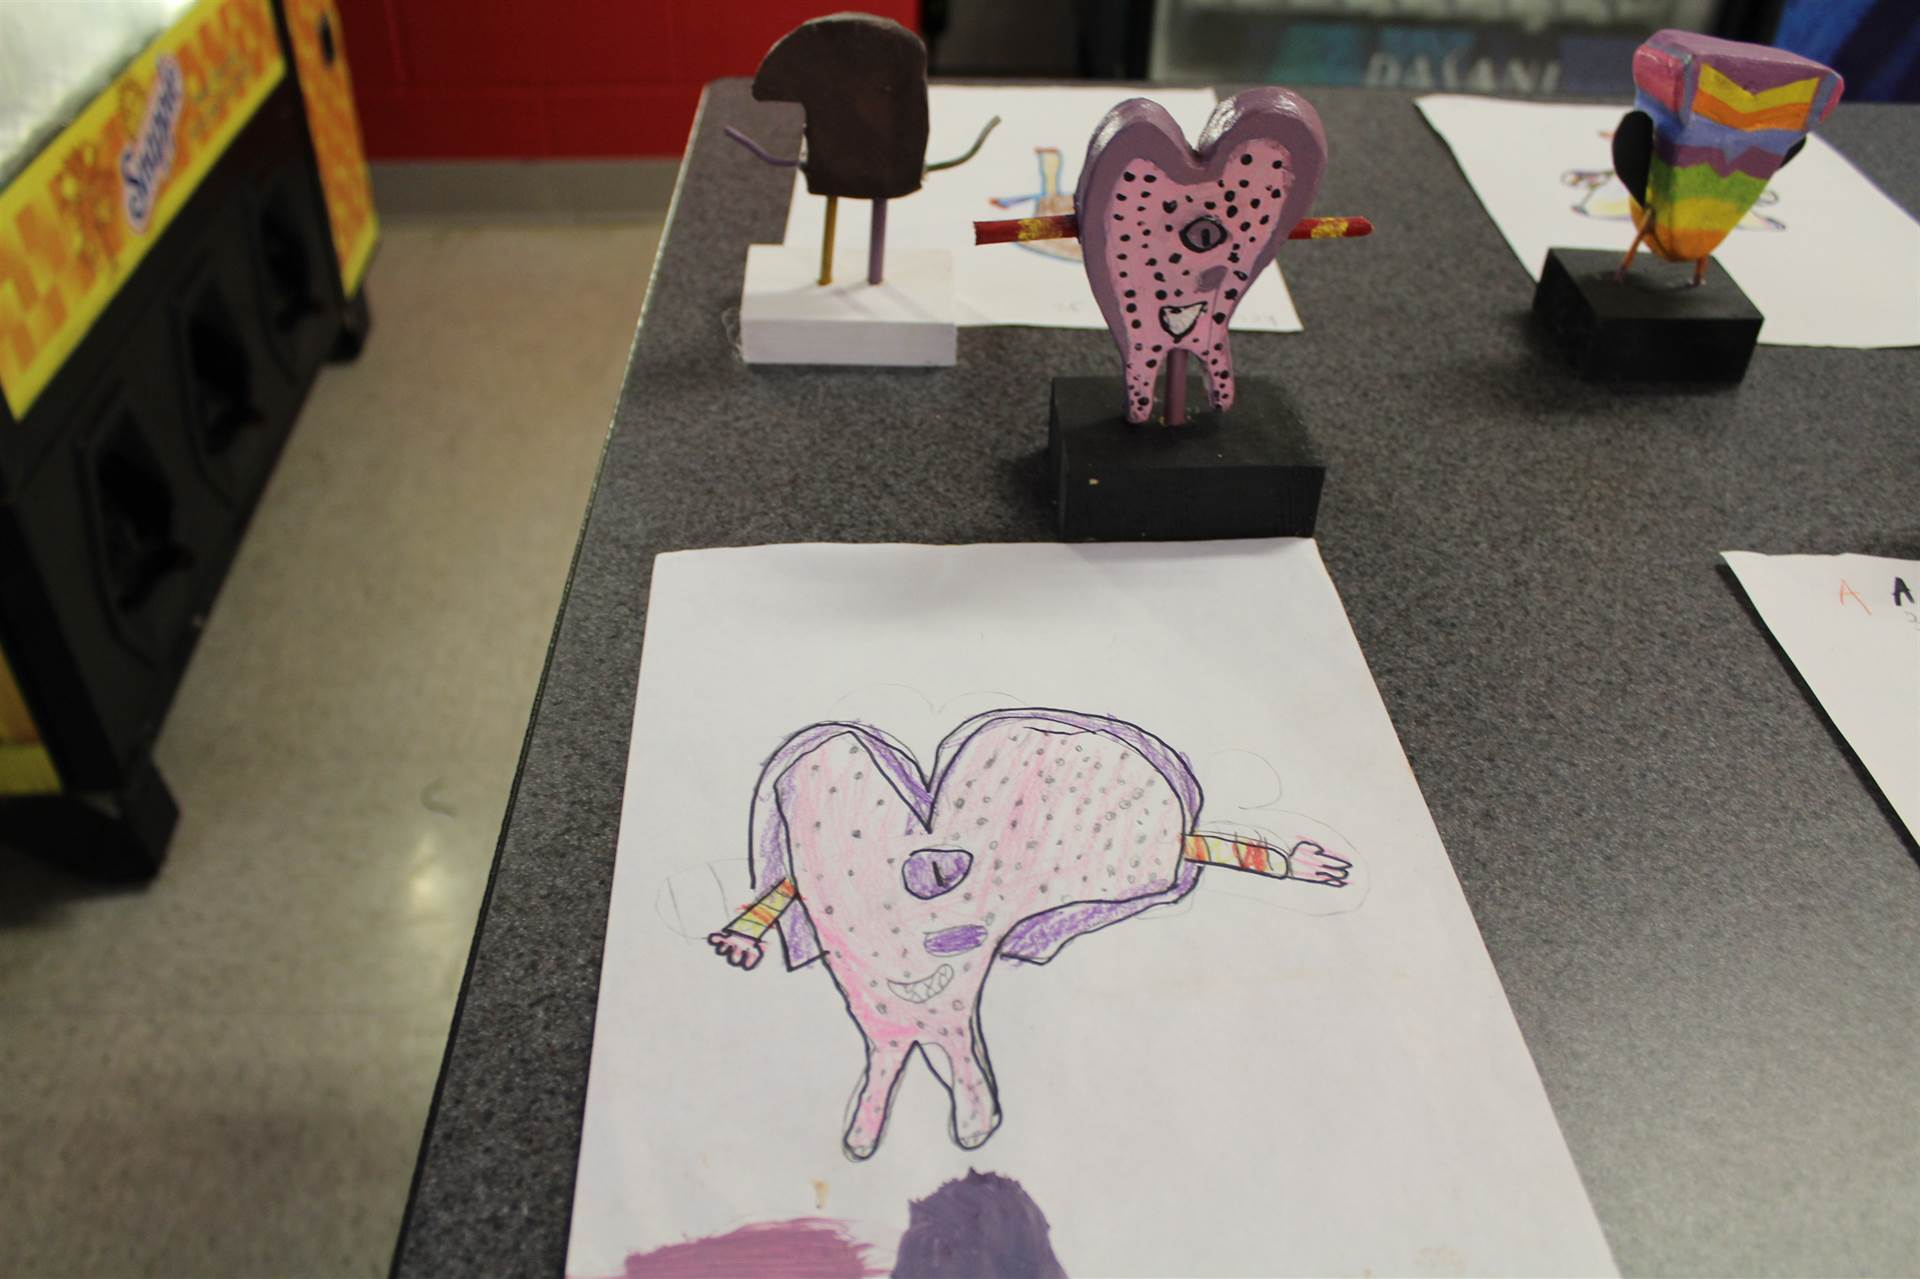 monster 3 d sculpture next to drawn picture 113